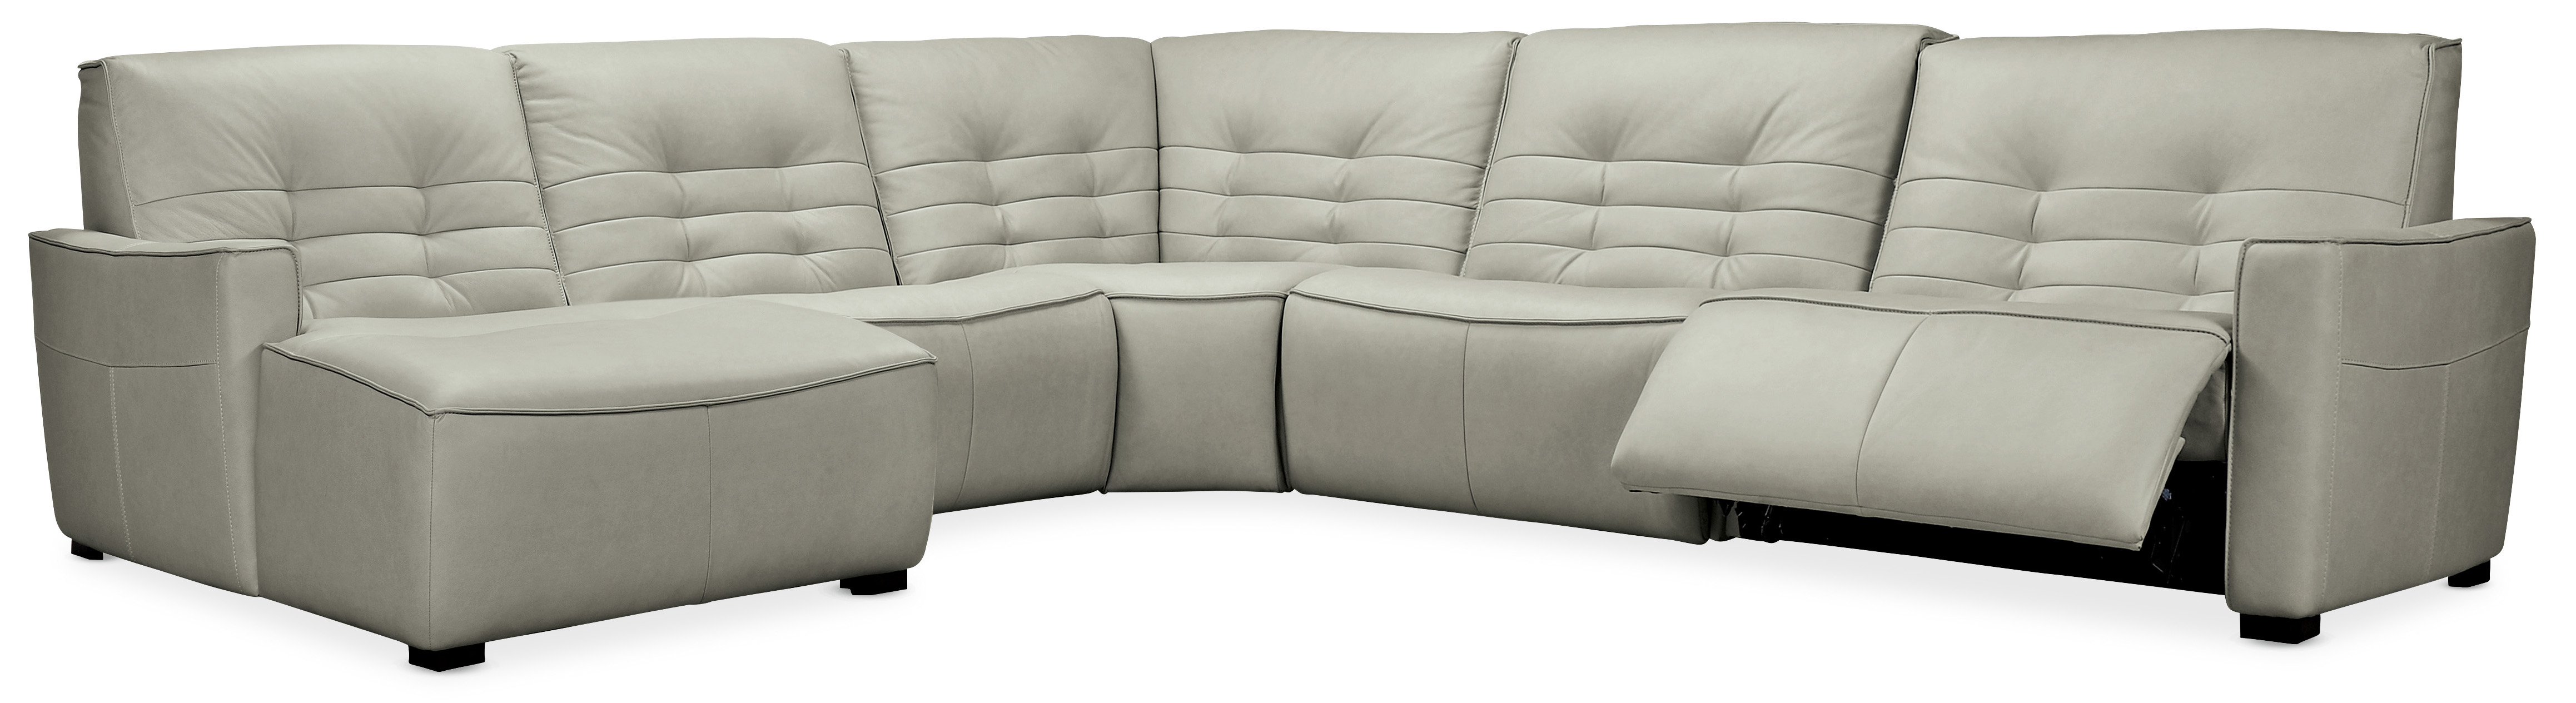 Reaux 5-Pc Power Recline Sectional with LAF Chaise by Hooker Furniture at Lindy's Furniture Company